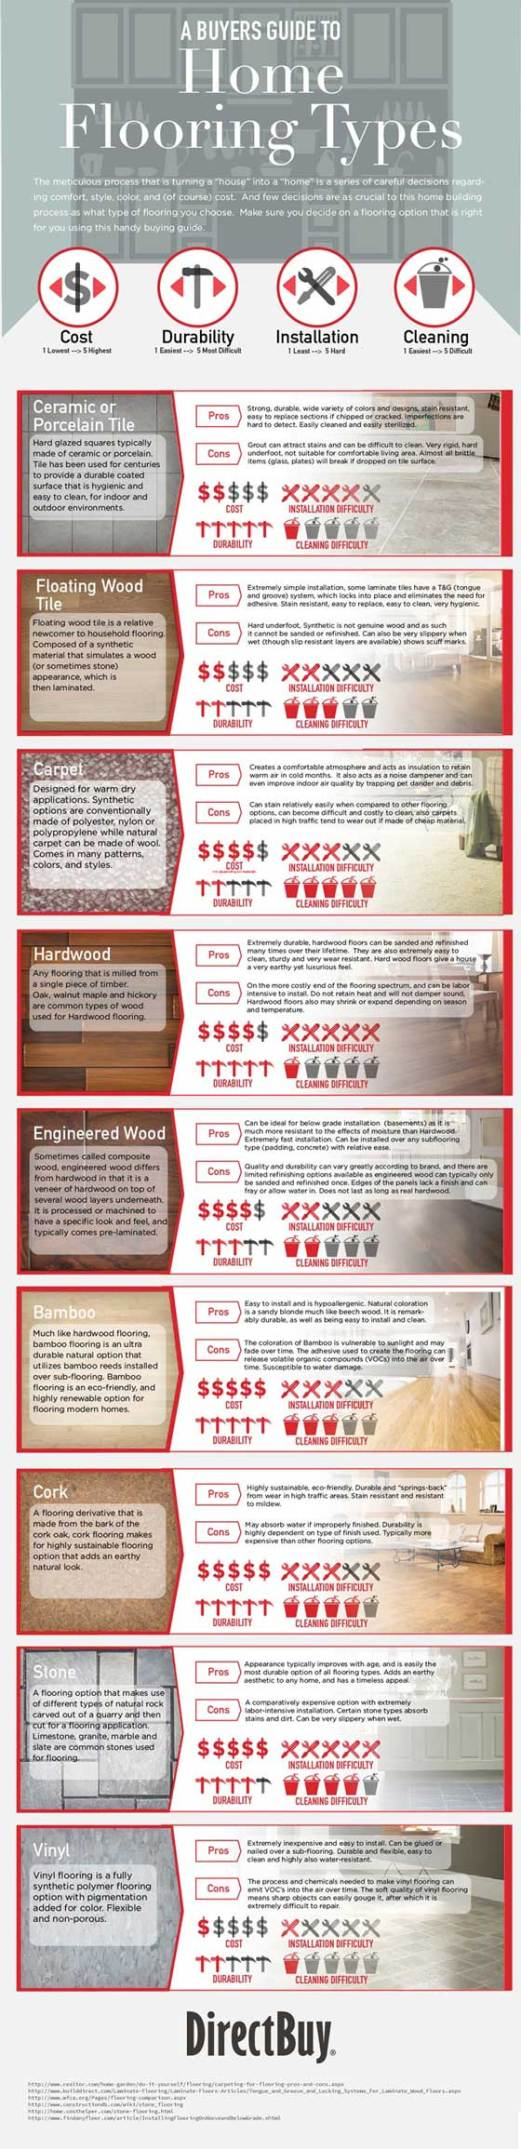 Infographic - Home Flooring Types